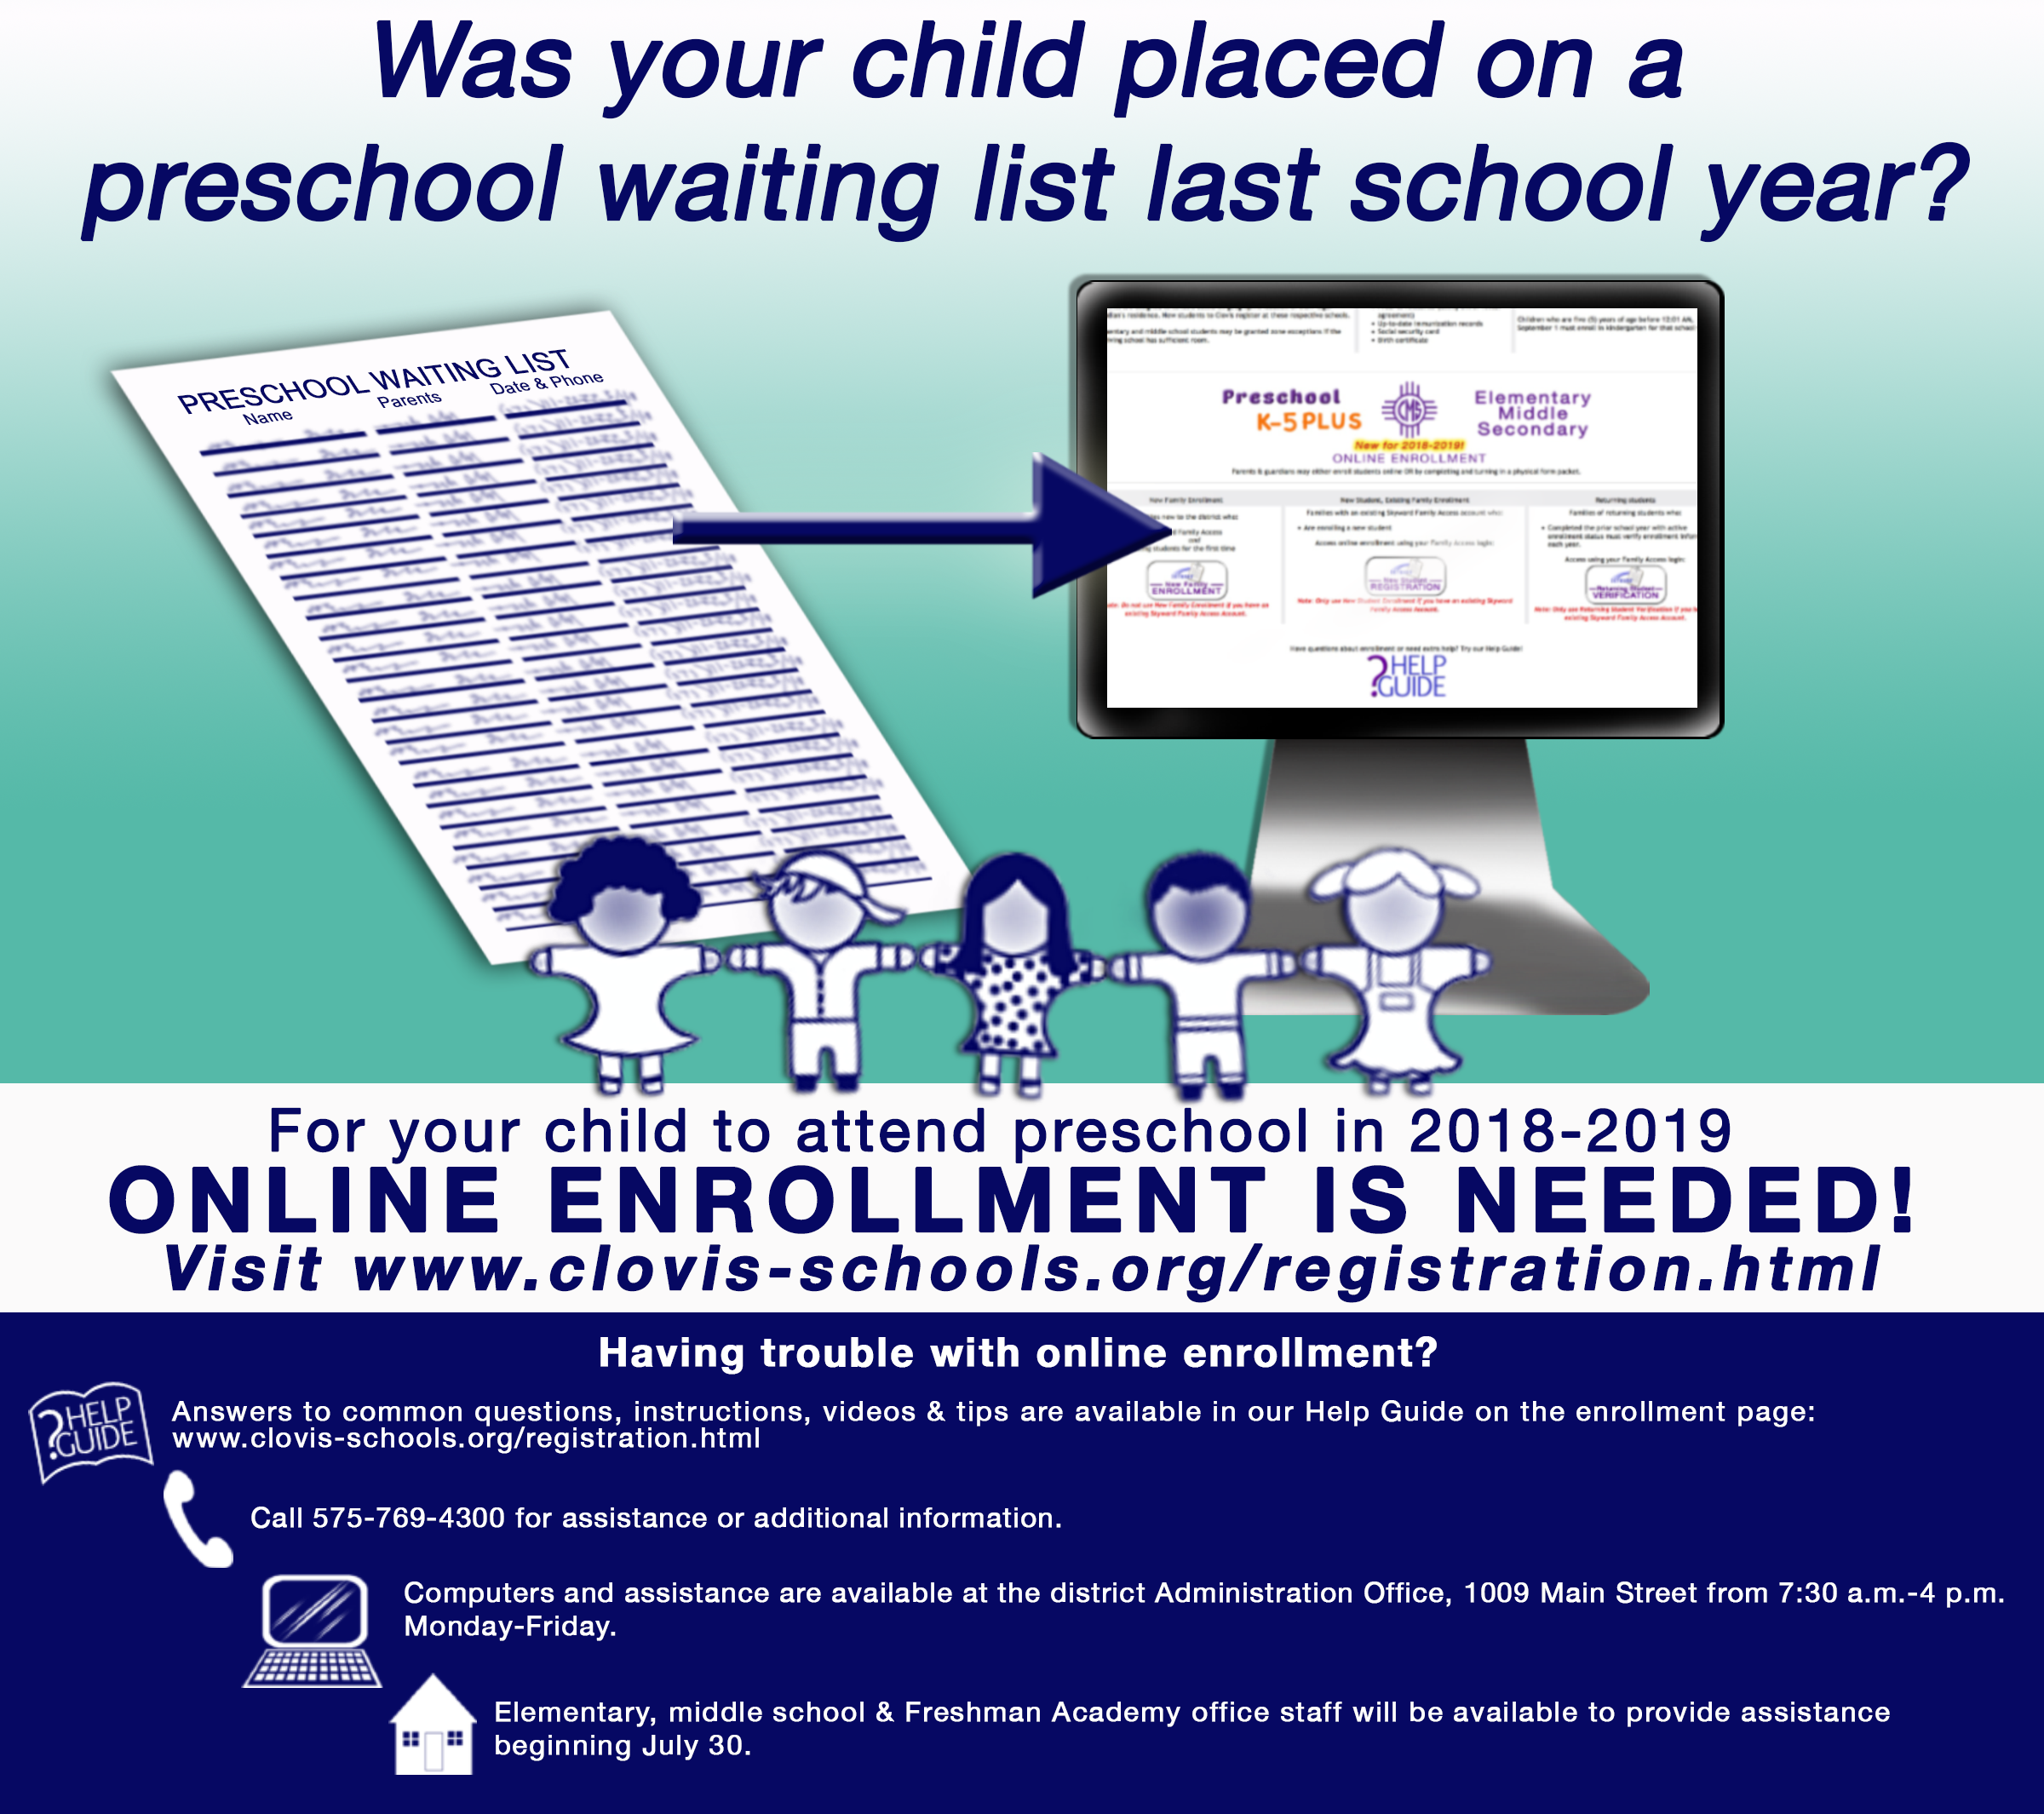 Image with text announcing online enrollment needed for preK students on waiting lists